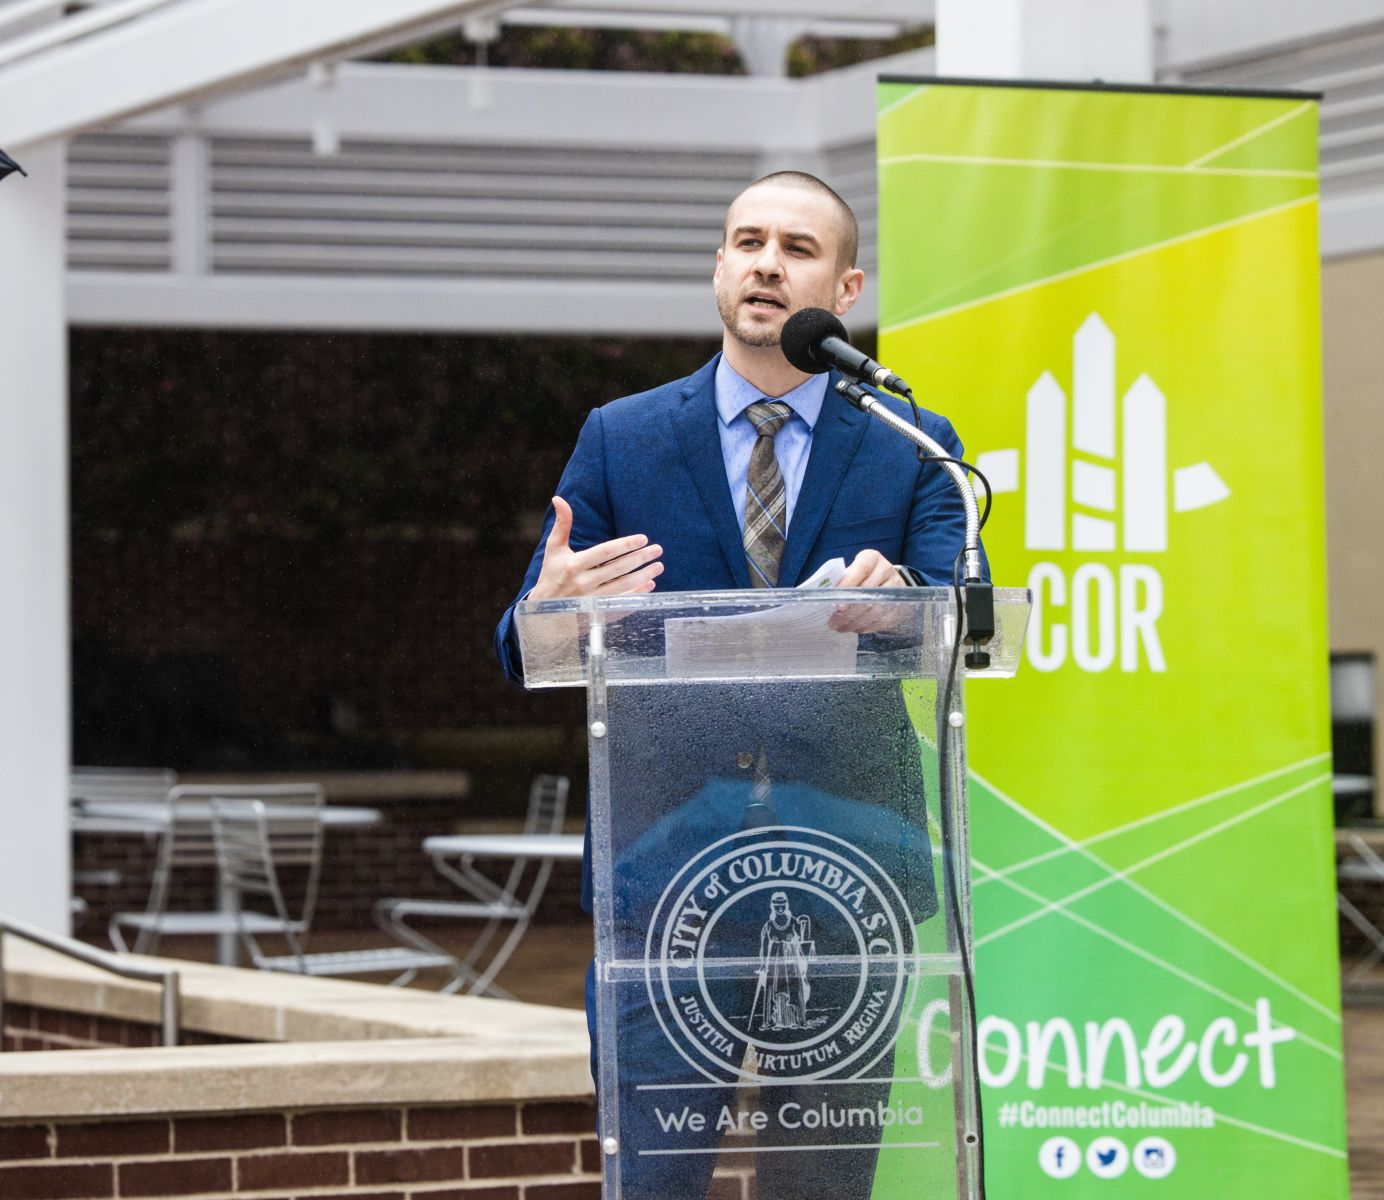 Ryan Coleman, director of the city of Columbia's economic development office, speaks at Tuesday's news conference launching Crash Course Columbia. (Photo/Forrest Clonts)